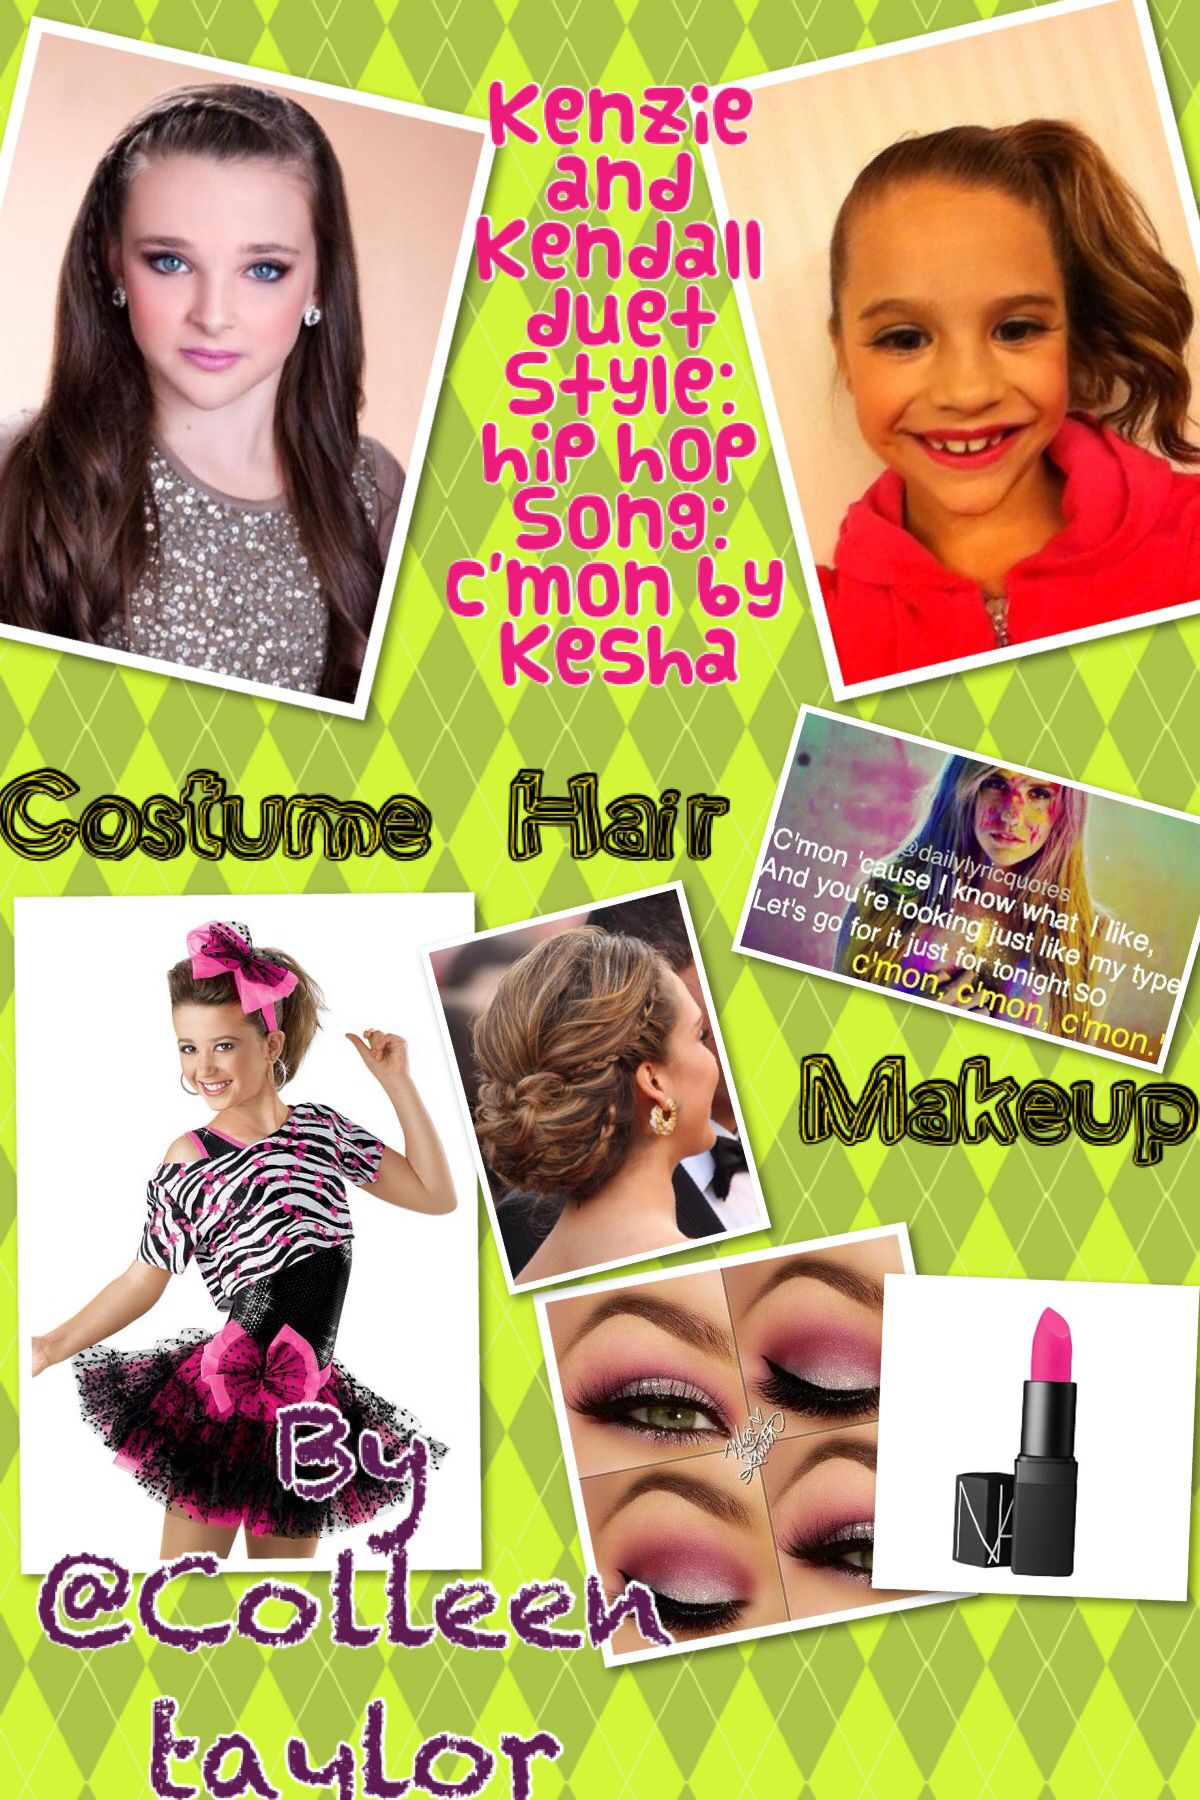 acrobaticnymphets.com 7 17 Best images about Dance moms on Pinterest | Mothers, Back to and Chloe